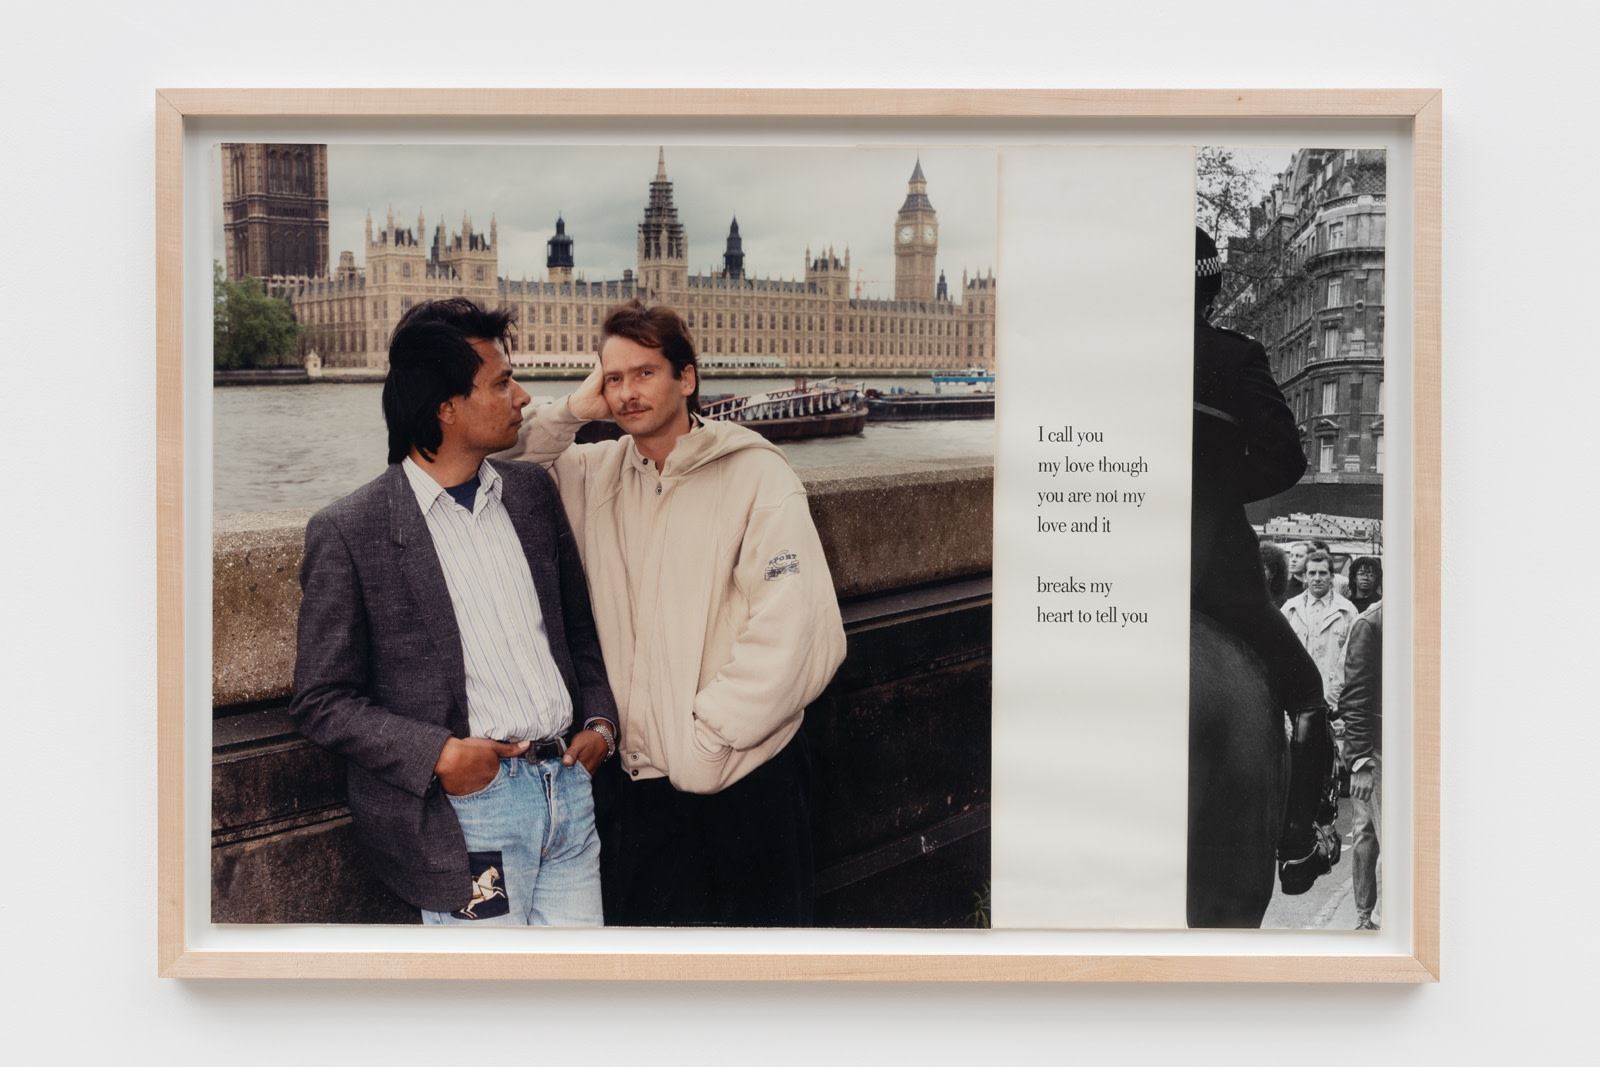 Sunil Gupta, Untitled 1 from the series 'Pretended' Family Relationships, 1988